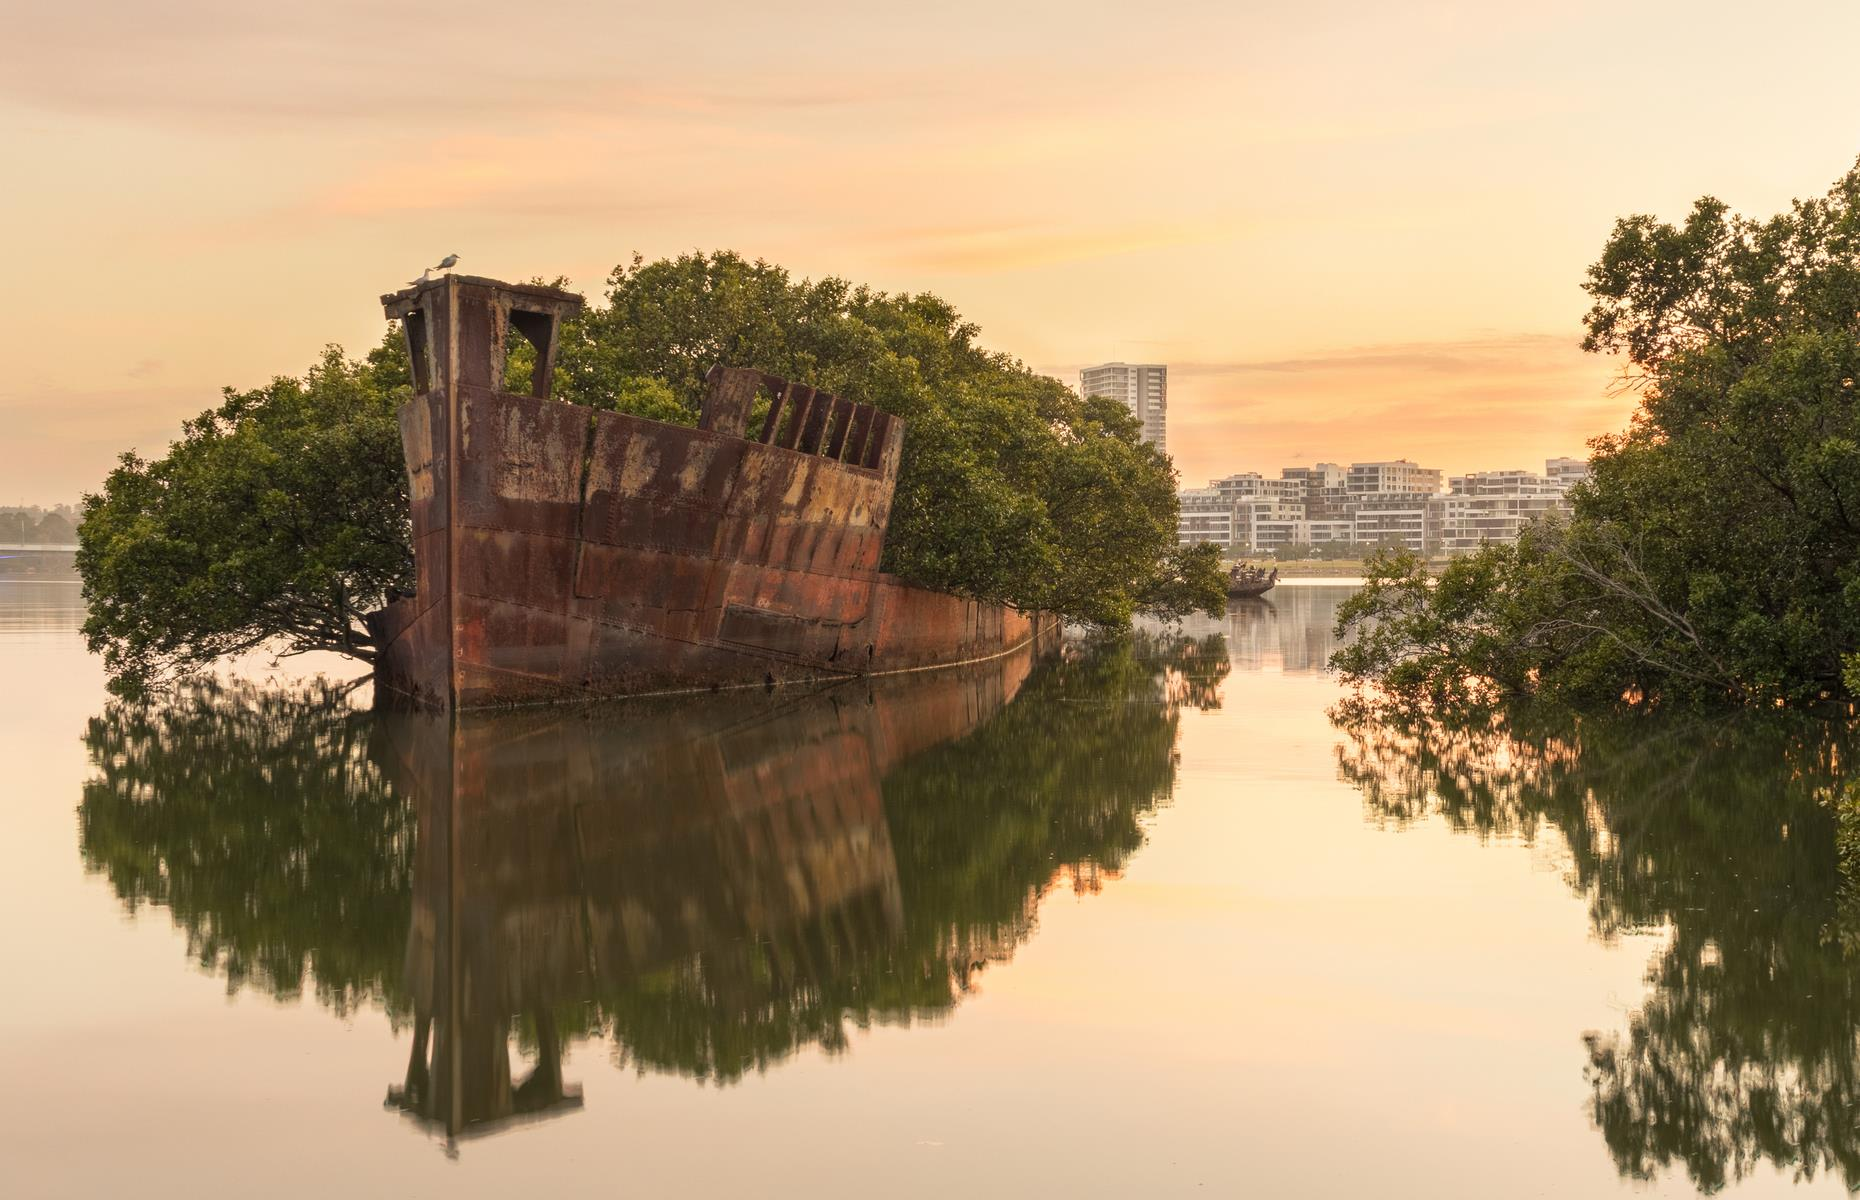 "Slide 22 of 64: Often dubbed a ""floating forest"", the shipwreck of SS Ayrfield in Sydney's Homebush Bay is so overgrown with mangrove trees that only its bow is visible. The area was once a busy port and trading boats would frequently pass through the waters here, carrying war supplies and other freight. But when trading slowed after the Second World War, many ships were decommissioned and simply left in the bay."